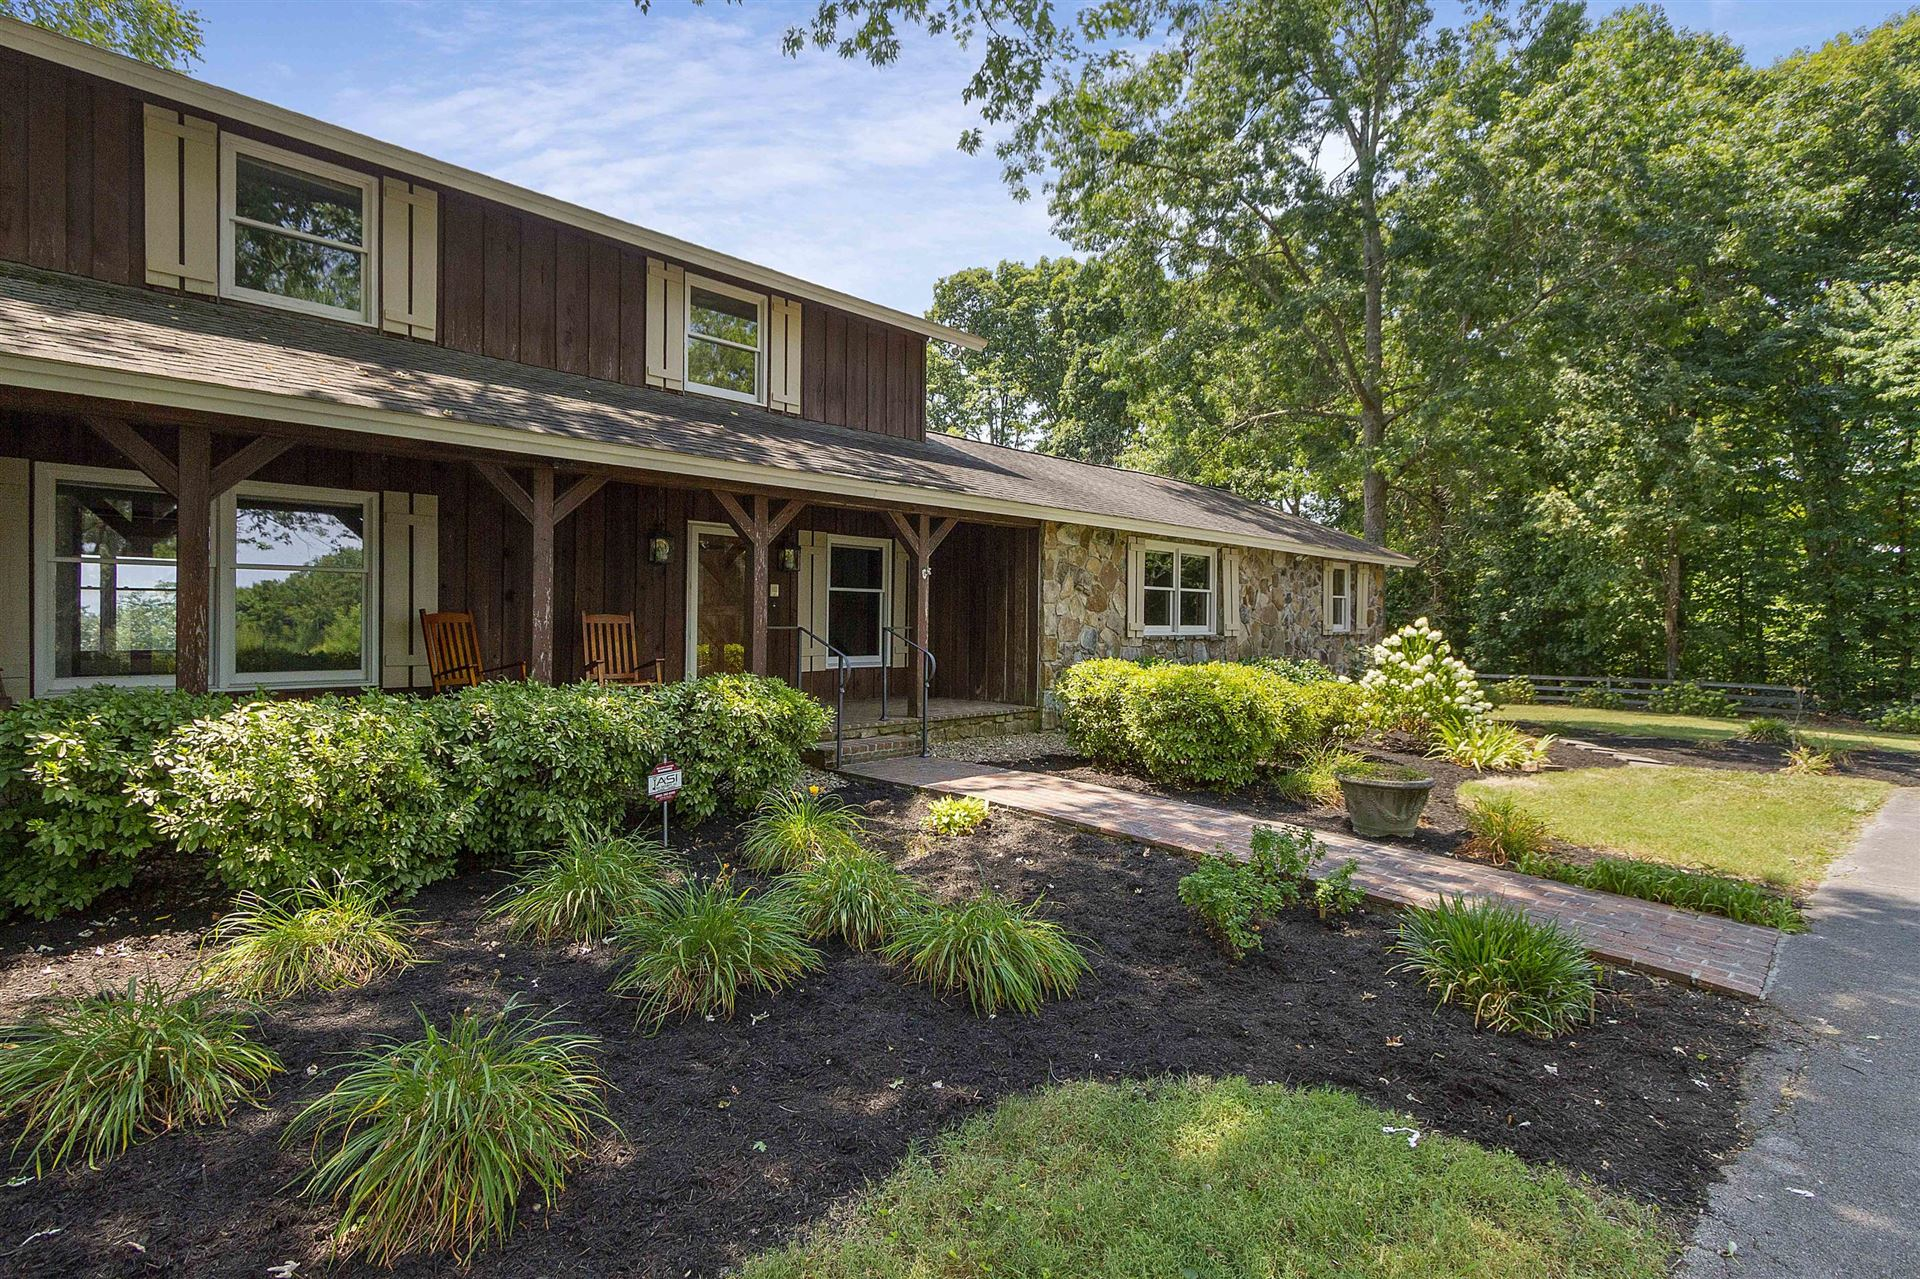 Photo of 1205 Coile Lane, Knoxville, TN 37922 (MLS # 1162238)